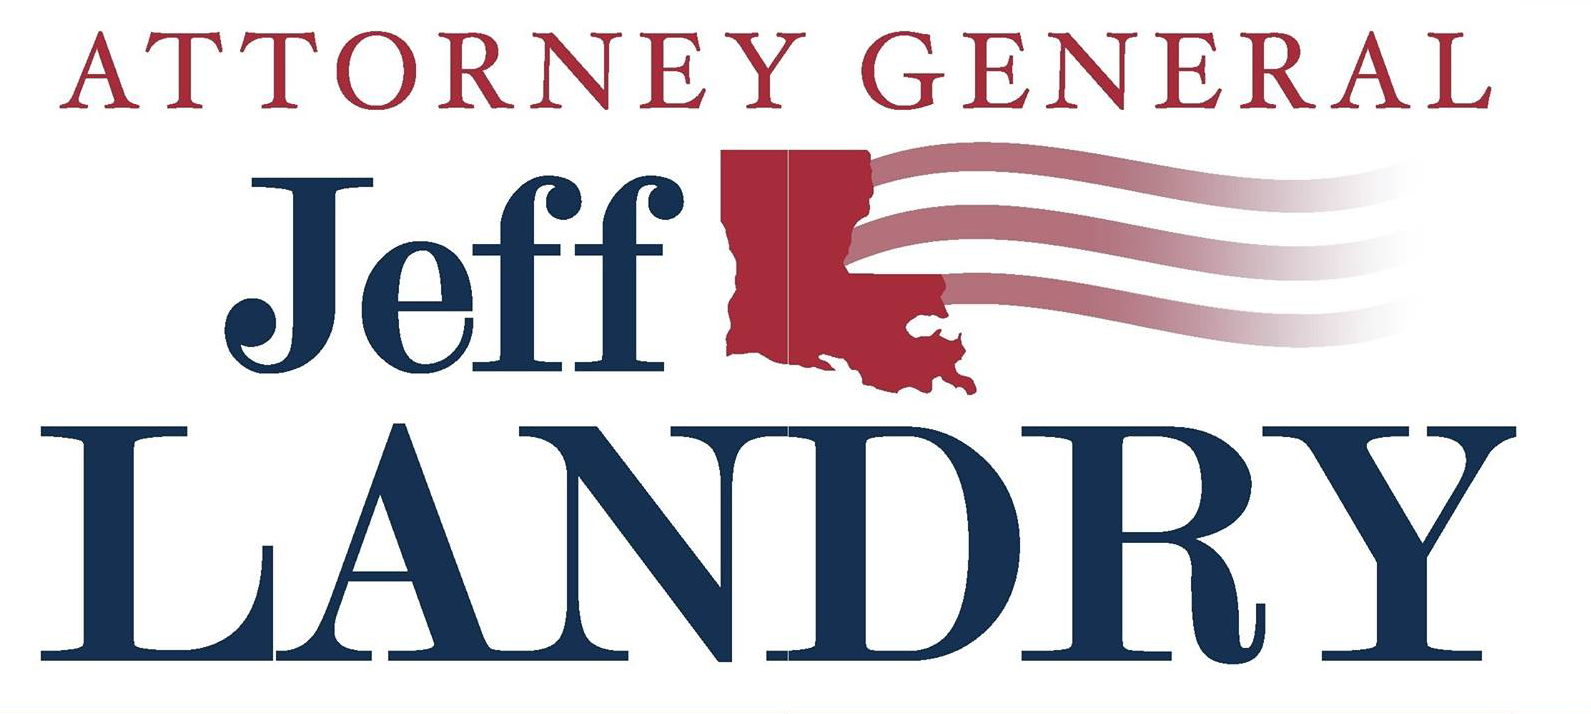 Attorney-General-Jeff-Landry-.png